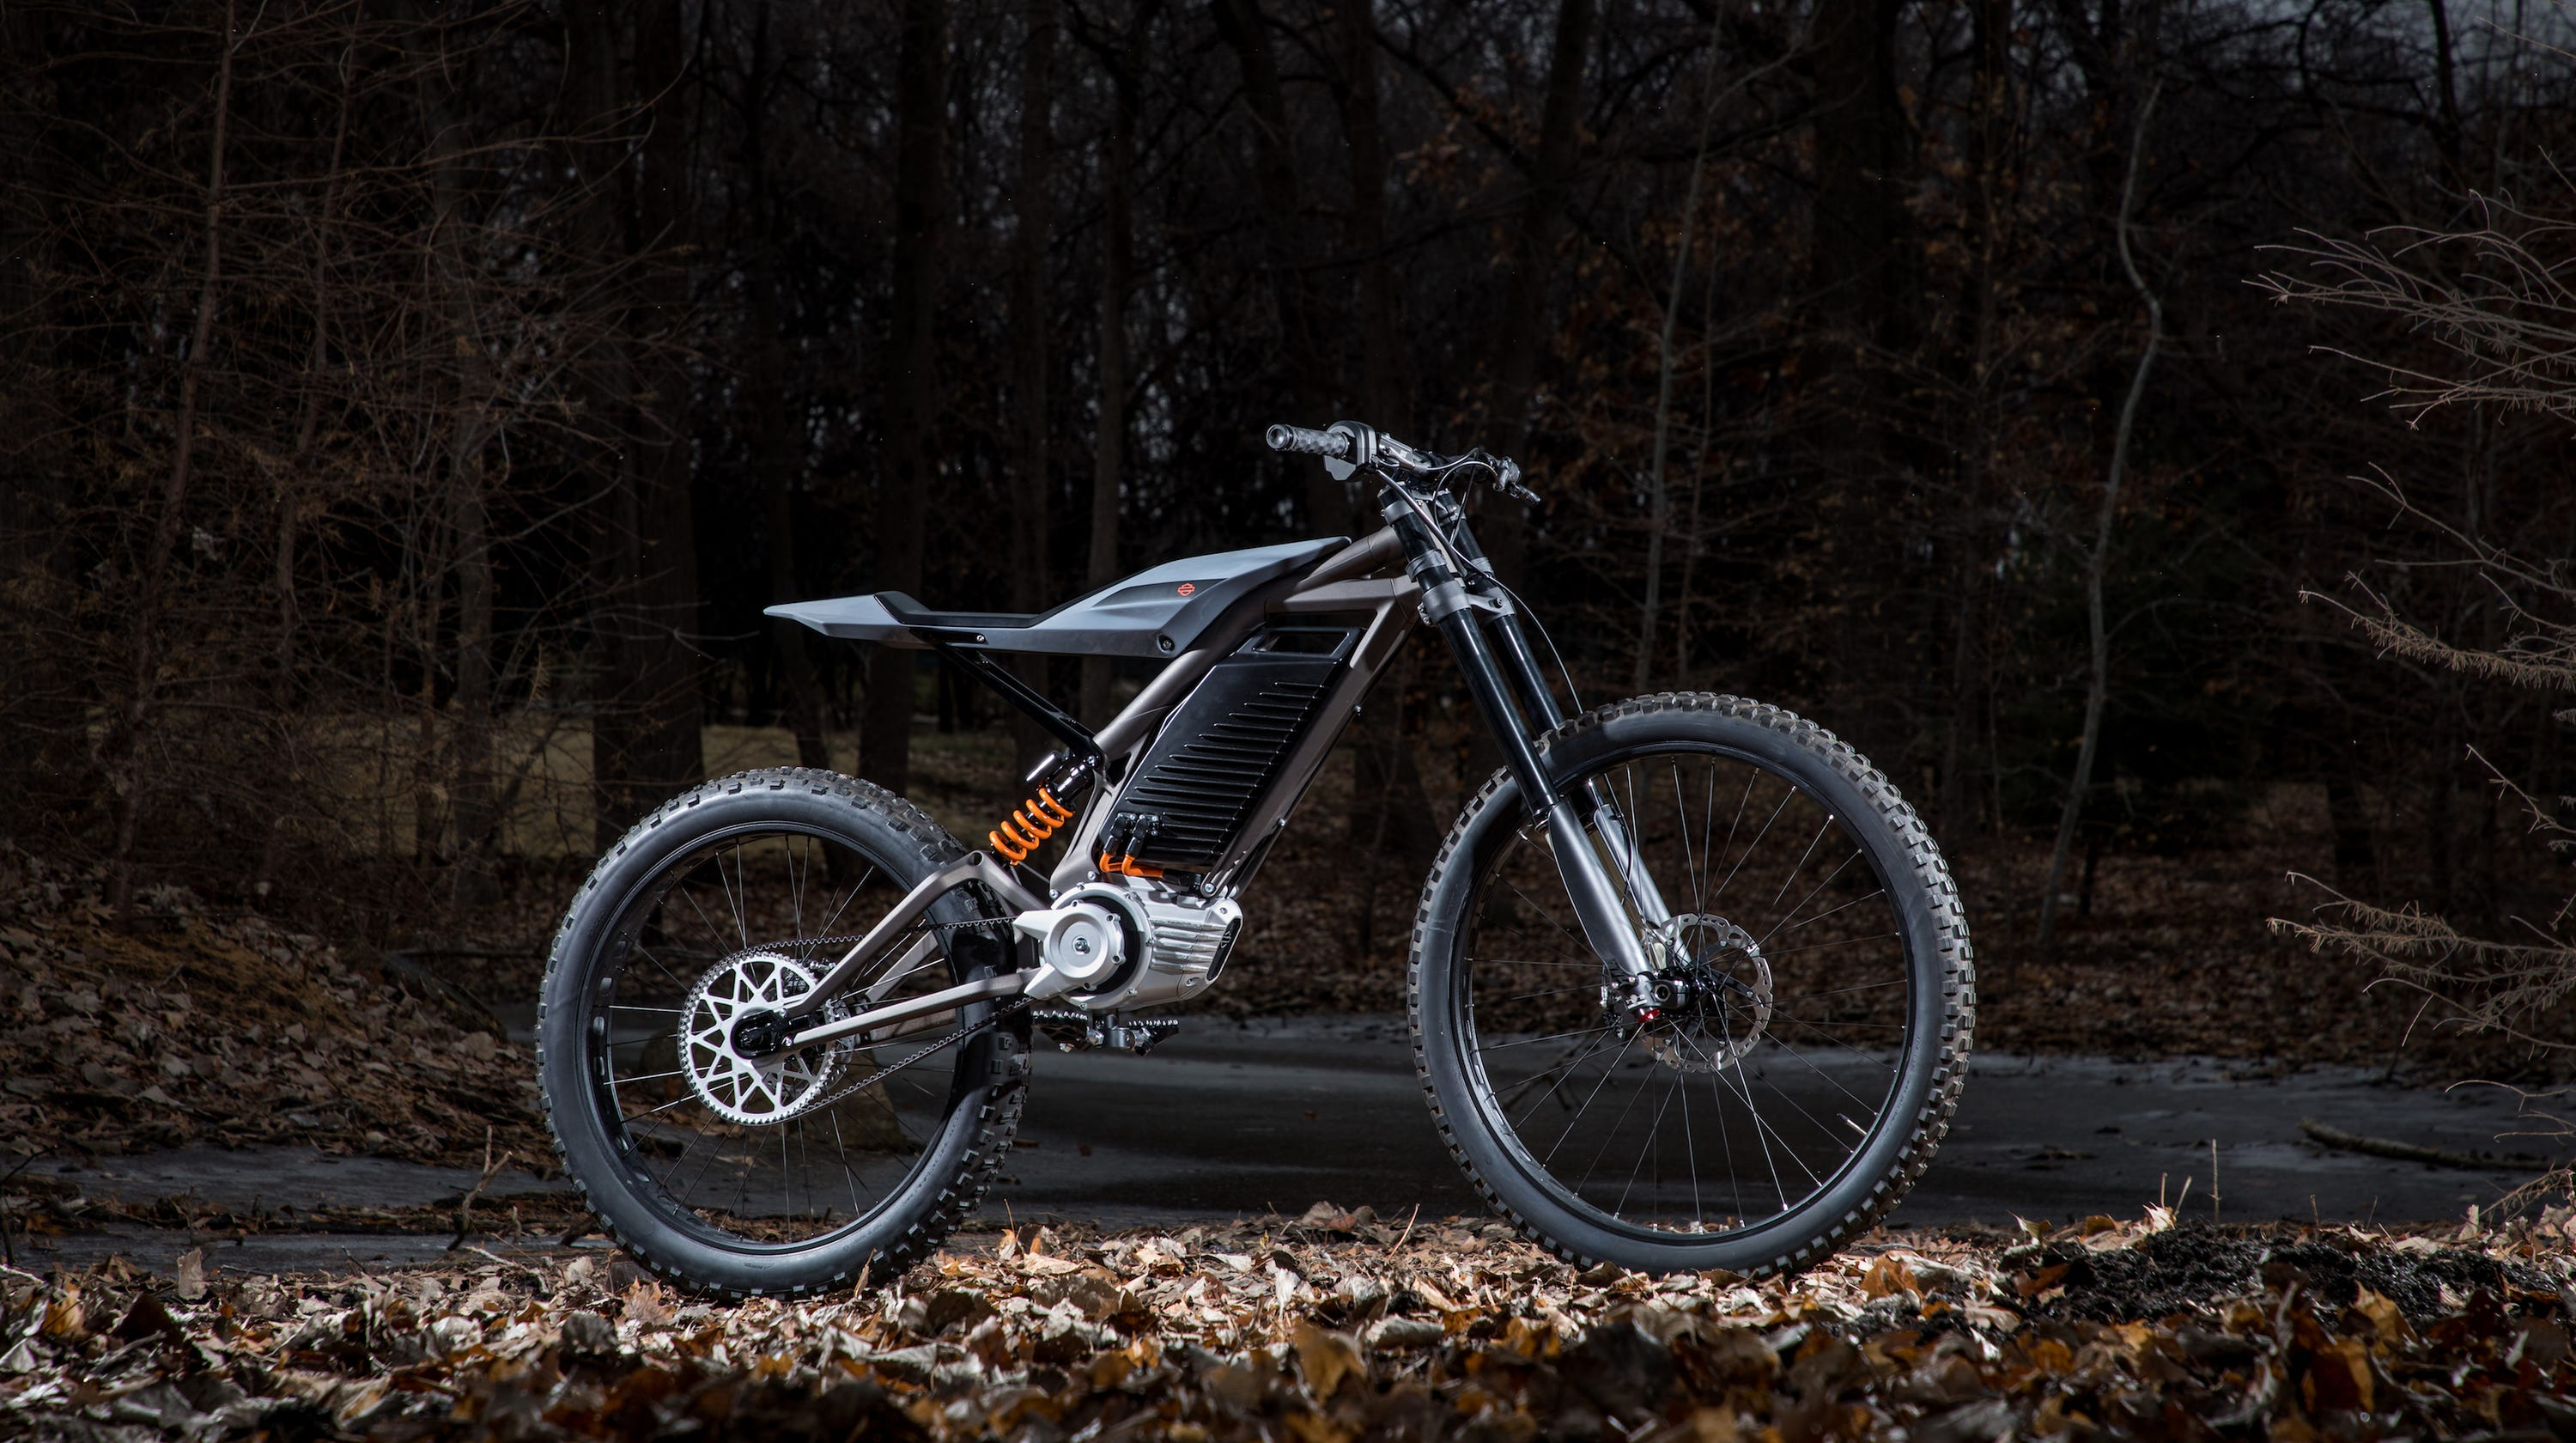 Harley-Davidson U.S. bike sales tumble  company says it s developing more  electric motorcycles ca3389edf15e